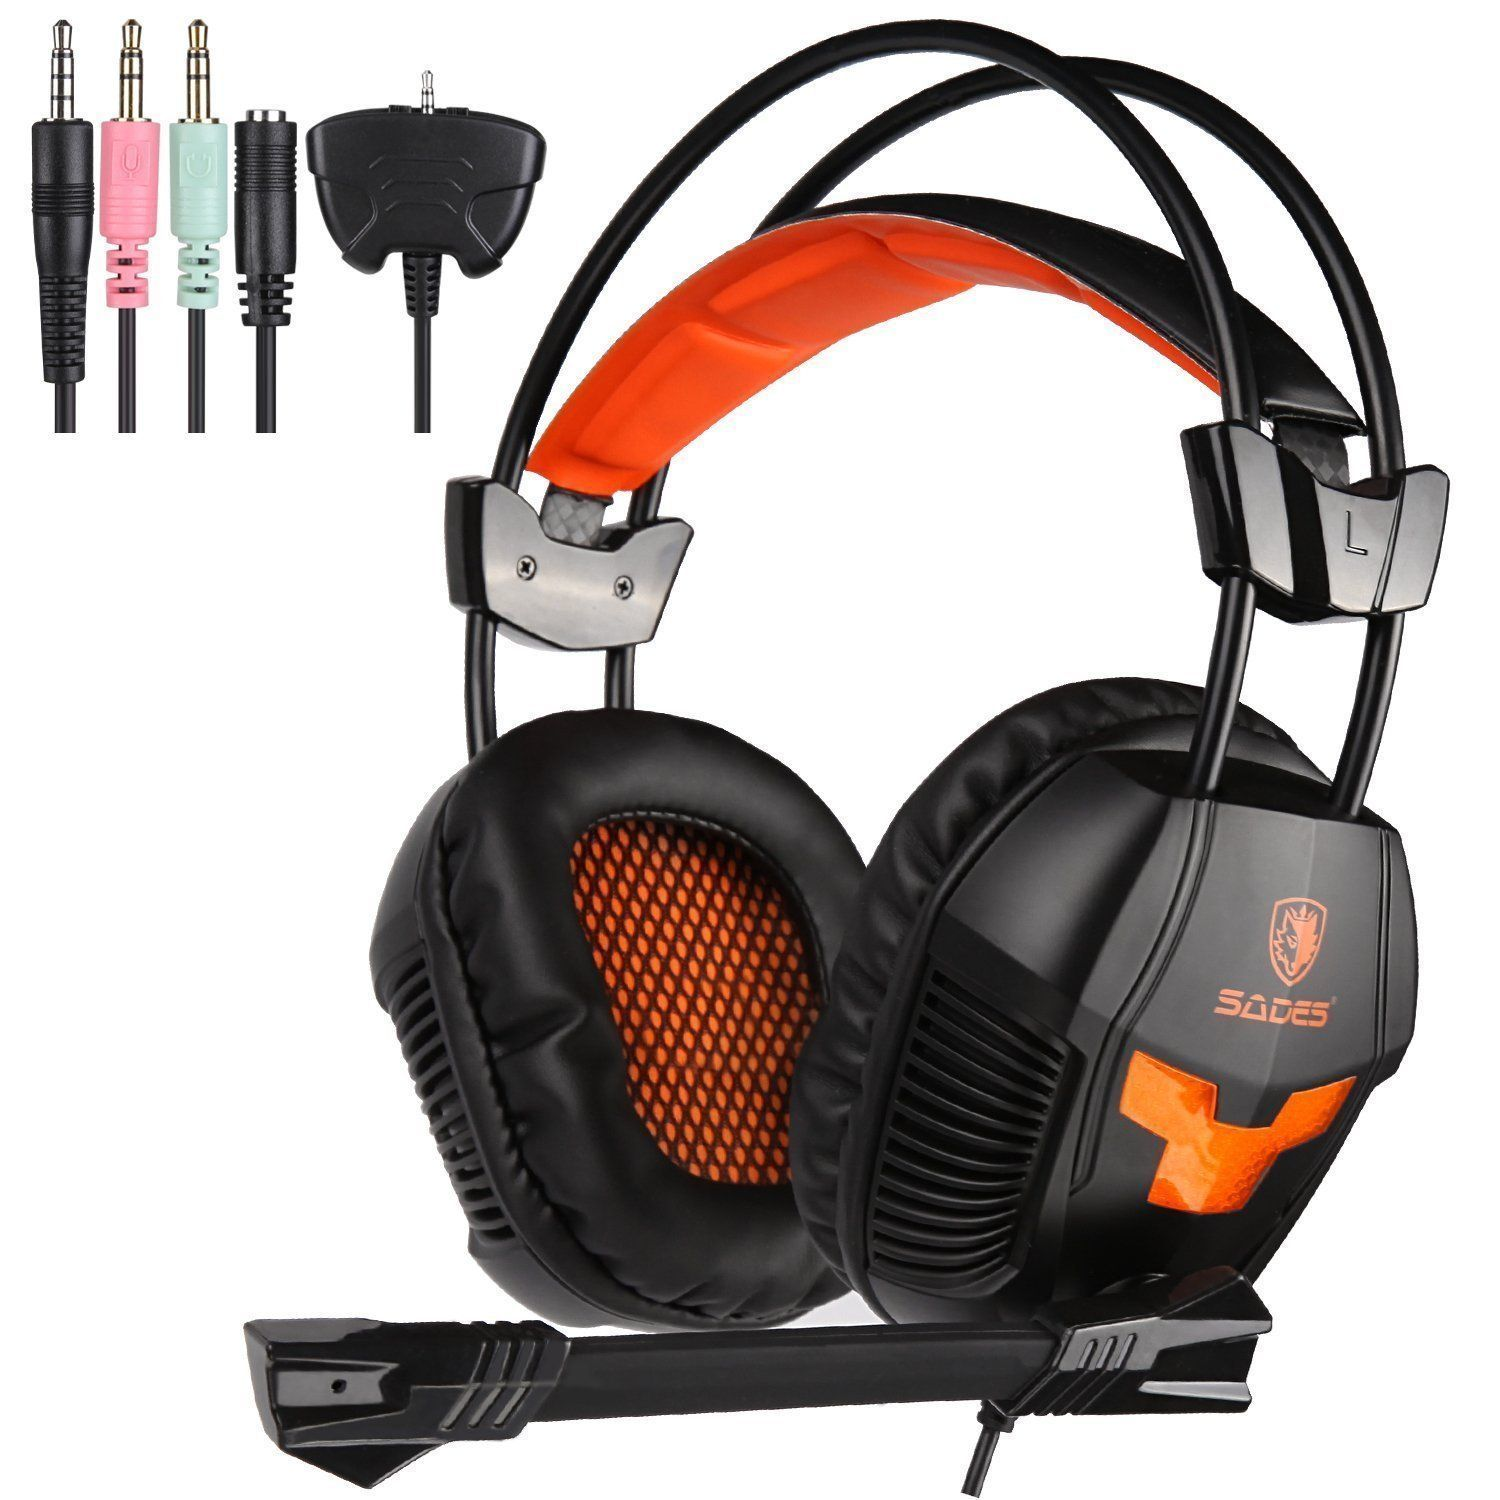 headset adapter, microphone and headphone